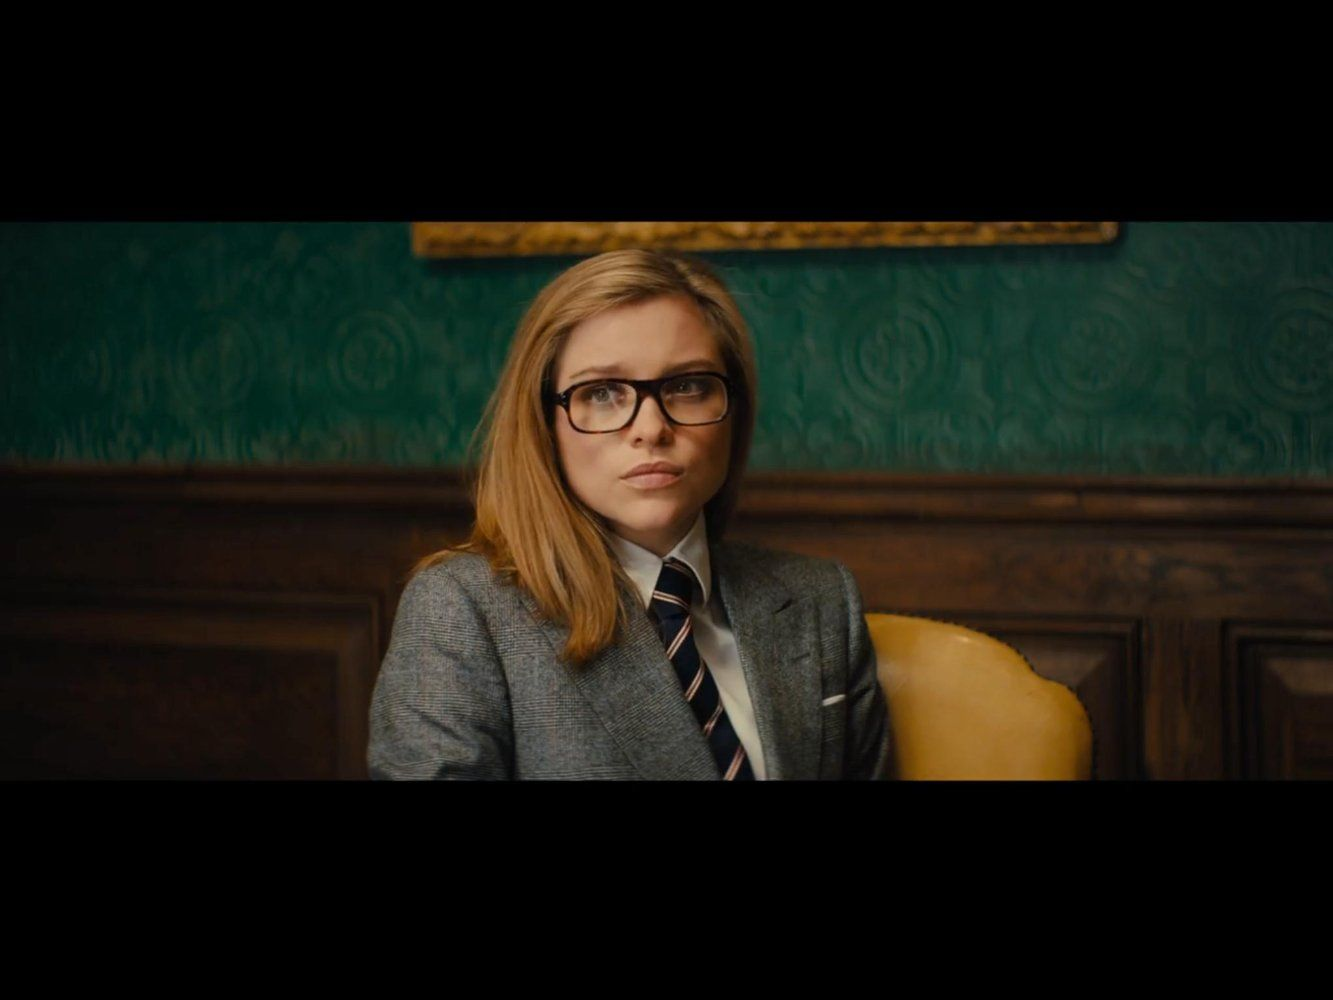 Pin By Movie Marketing On Kingsman The Super Spy Sophie Cookson Kingsman The Golden Circle Watch Kingsman Sophie cookson as roxy kingsman golden